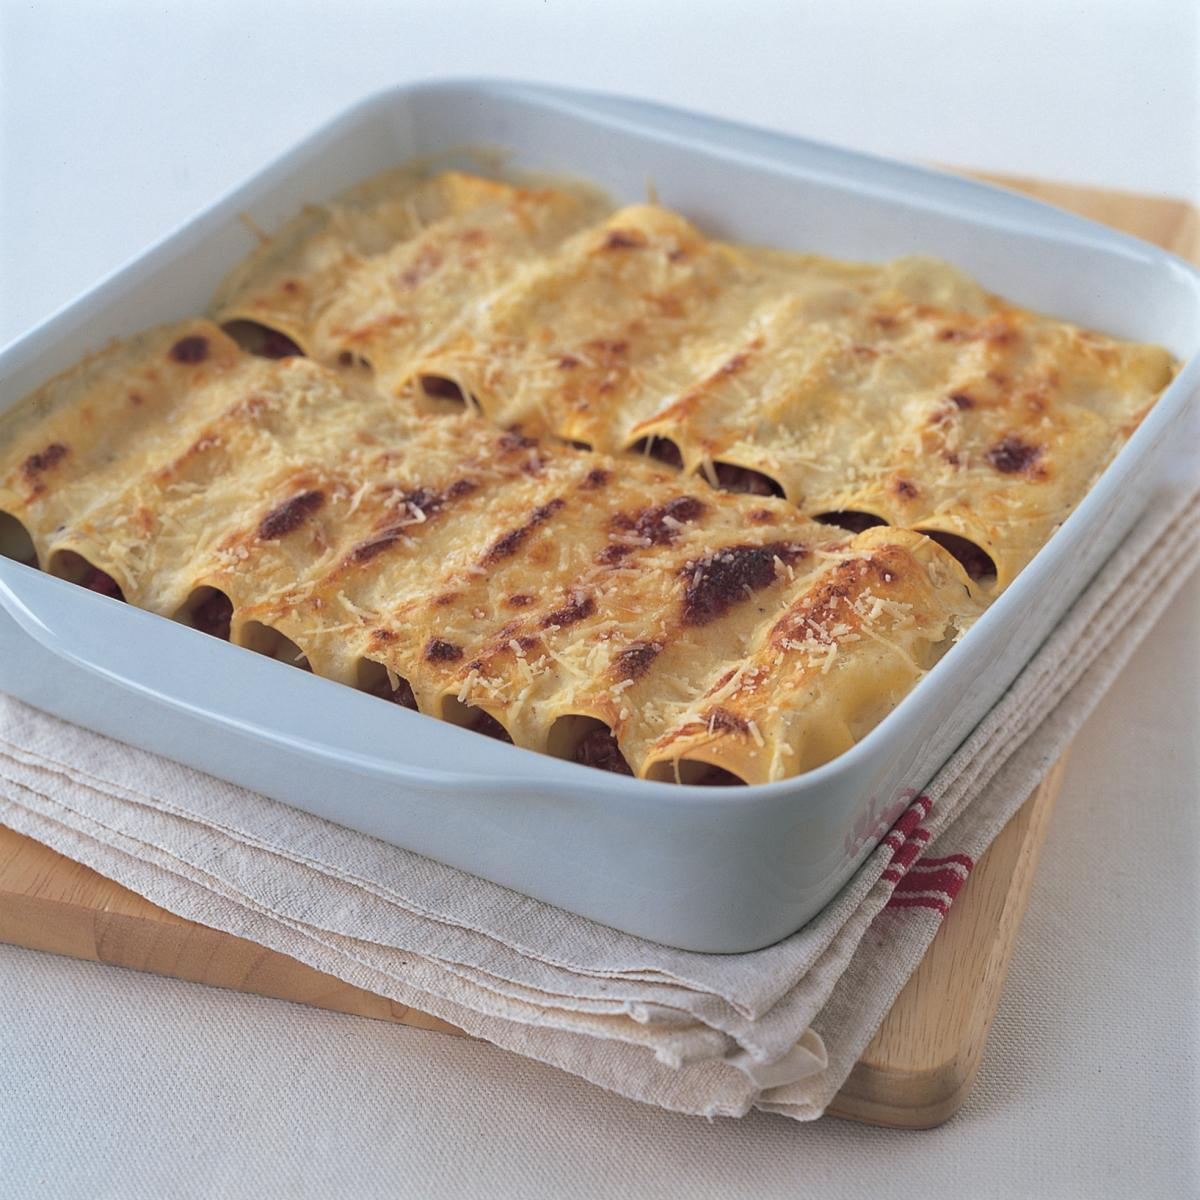 A picture of Delia's Baked Cannelloni recipe